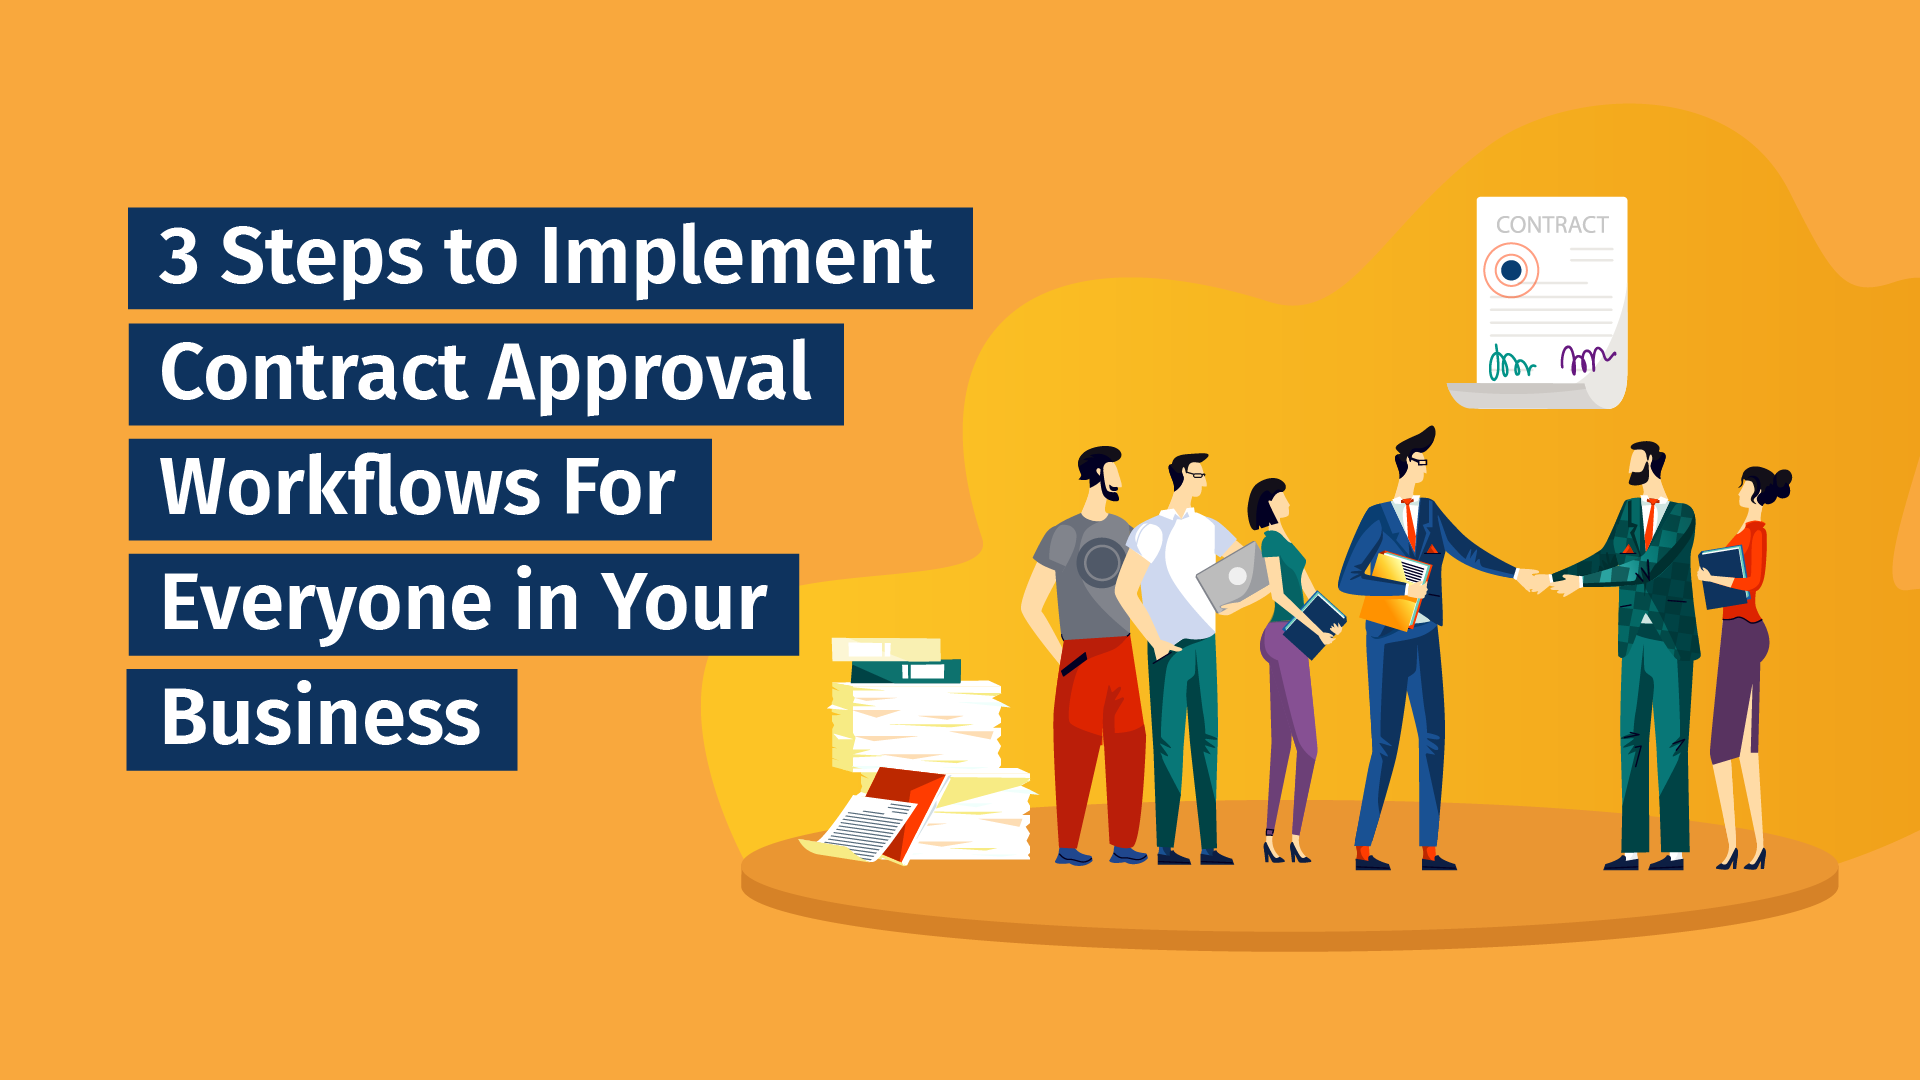 3 Steps to Implement Contract Approval Workflows For Everyone in Your Business